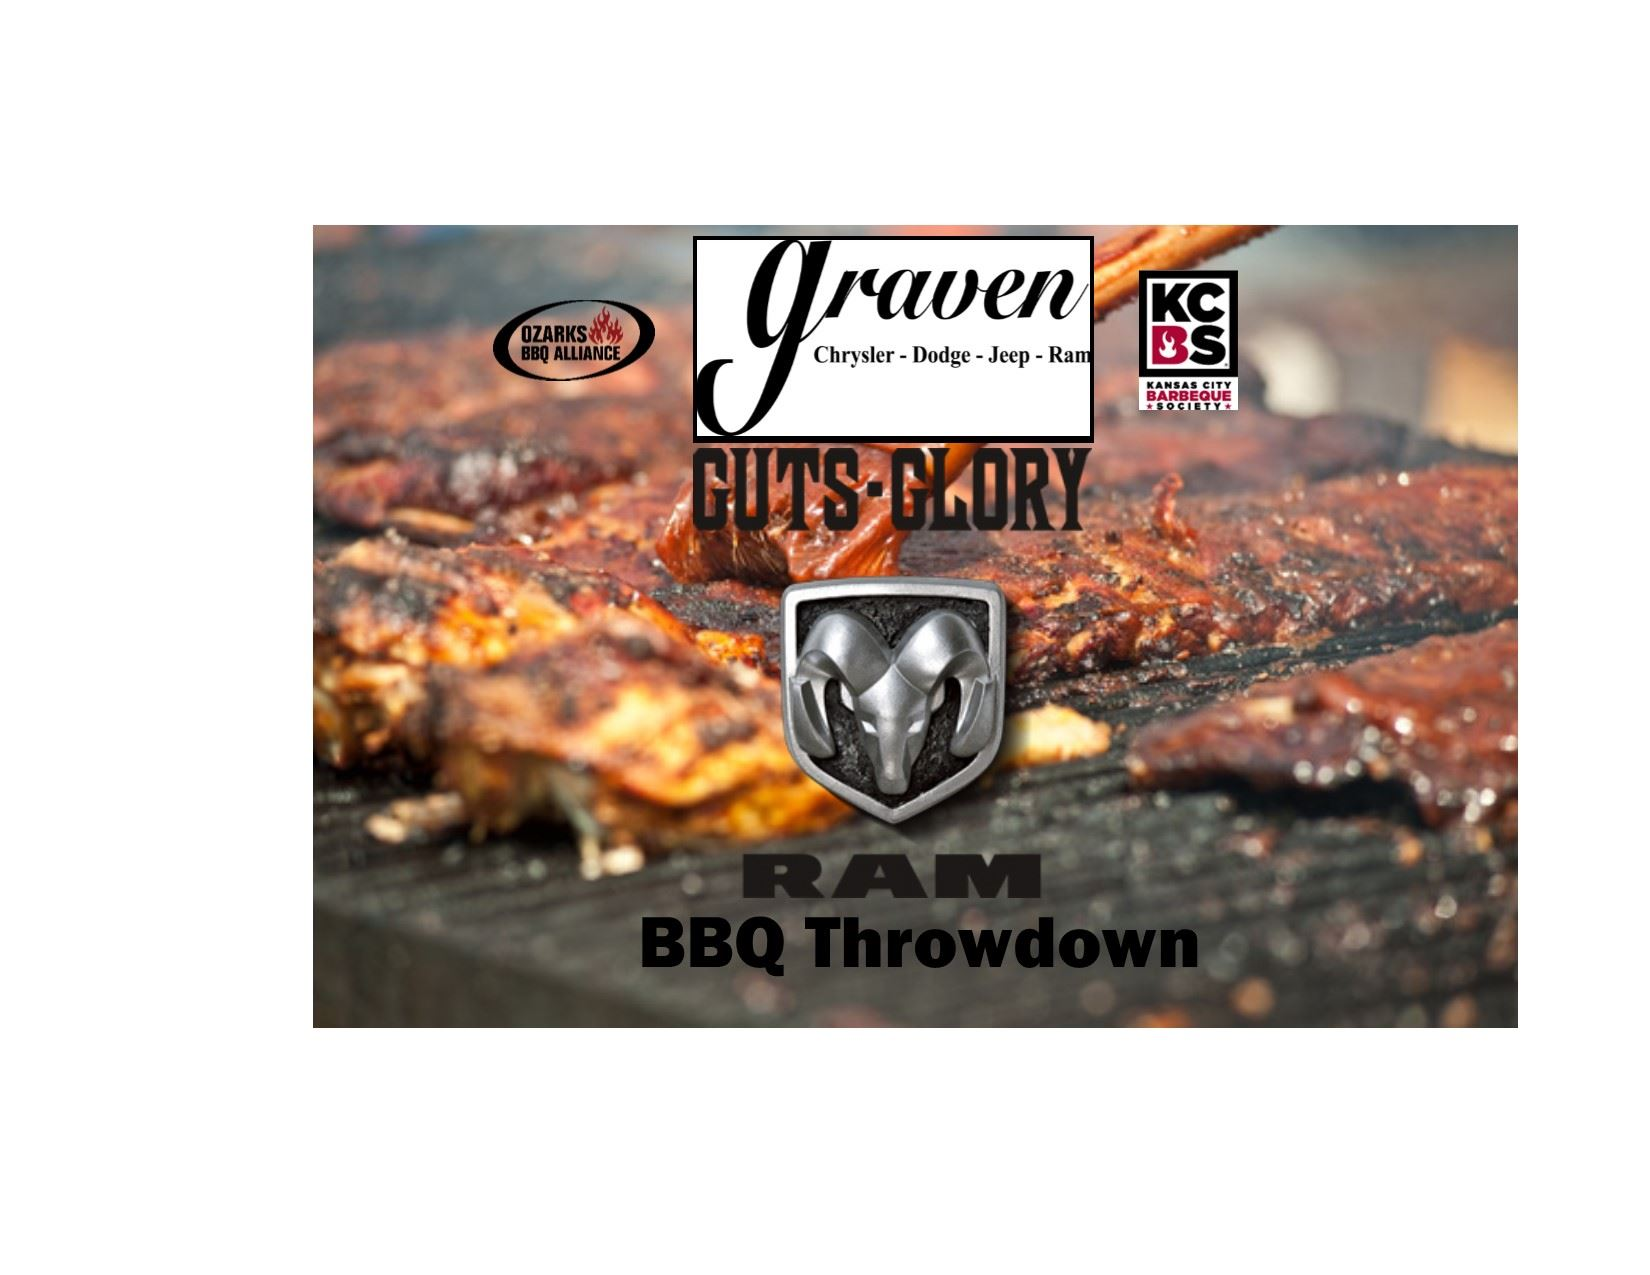 BBQ Throwdown